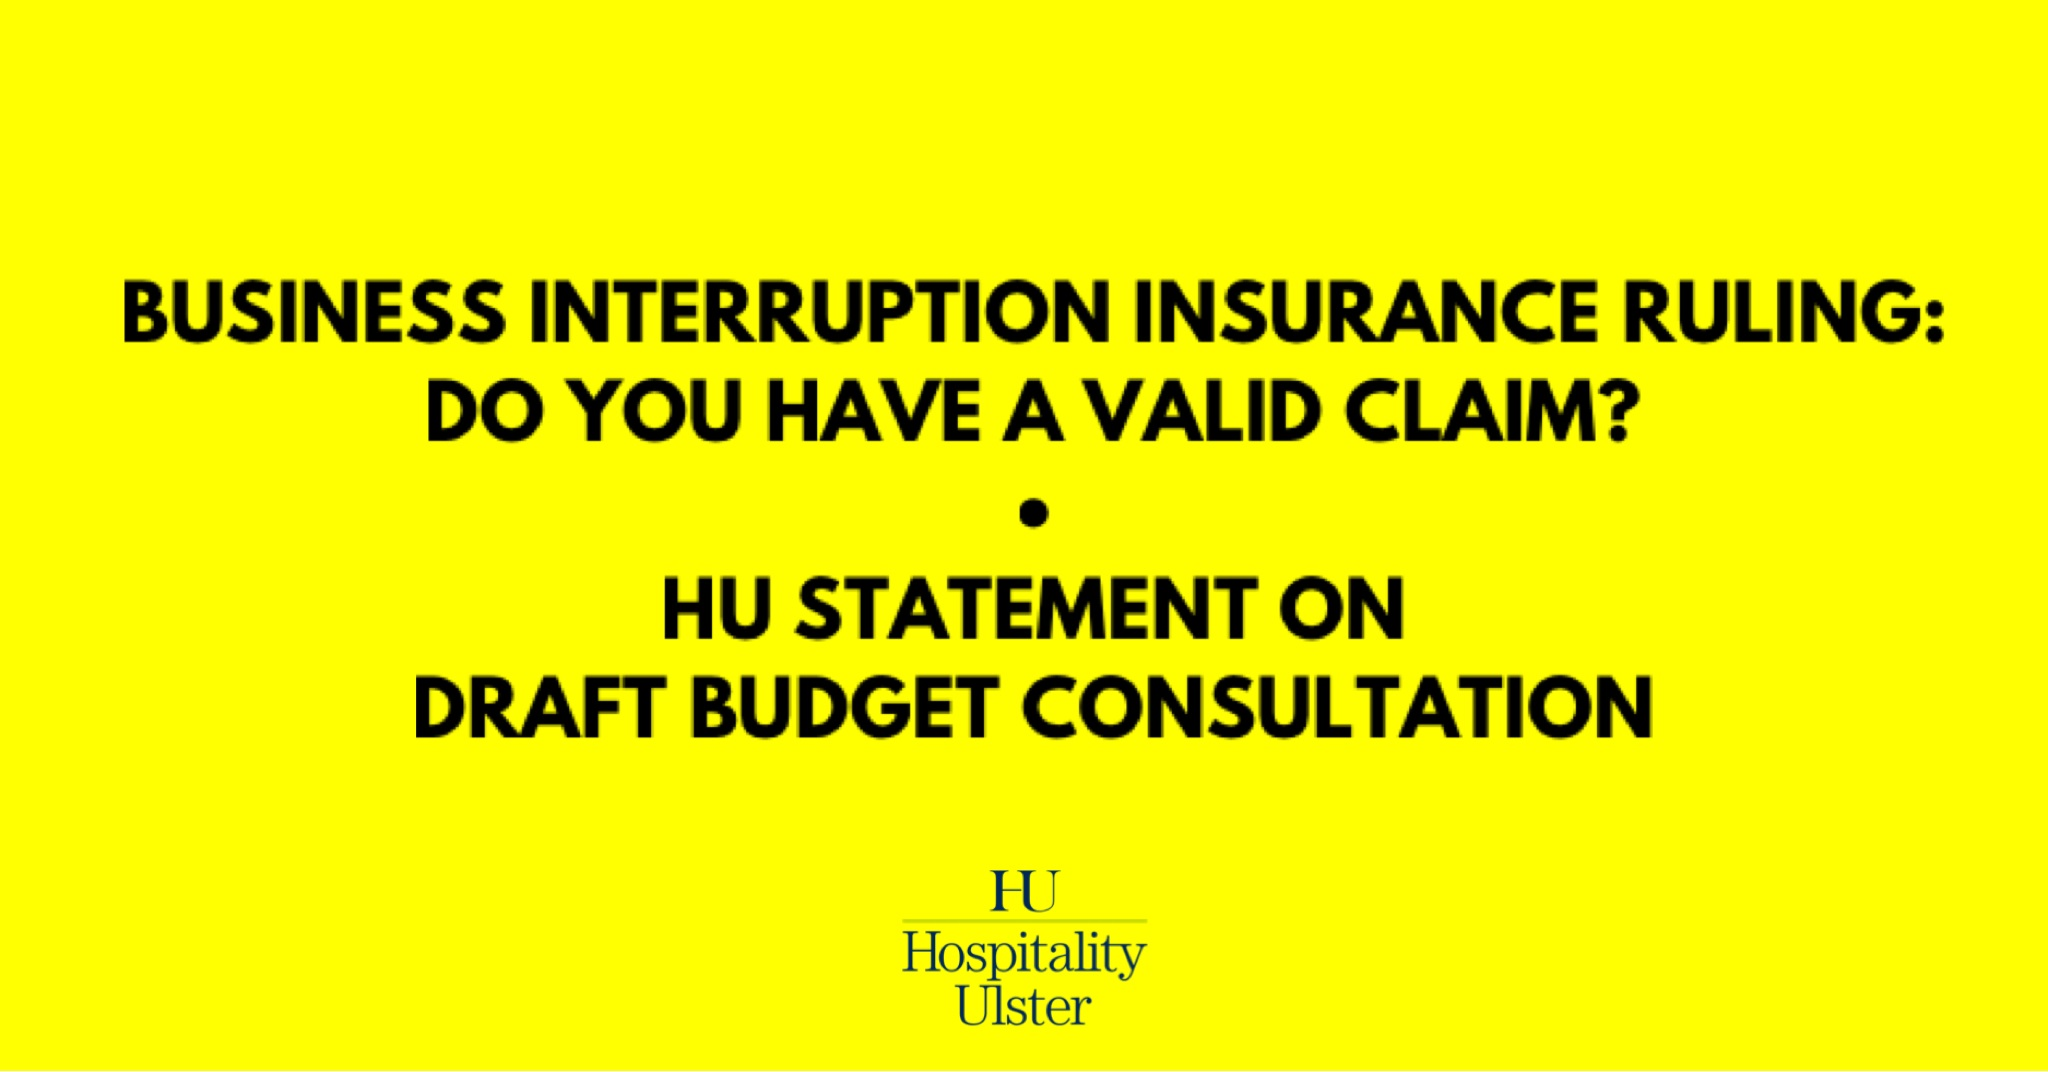 HU UPDATE - DO YOU HAVE A VALID BUSINESS INTERRUPTION CLAIM - STATEMENT ON DRAFT BUDGET CONSULTATION